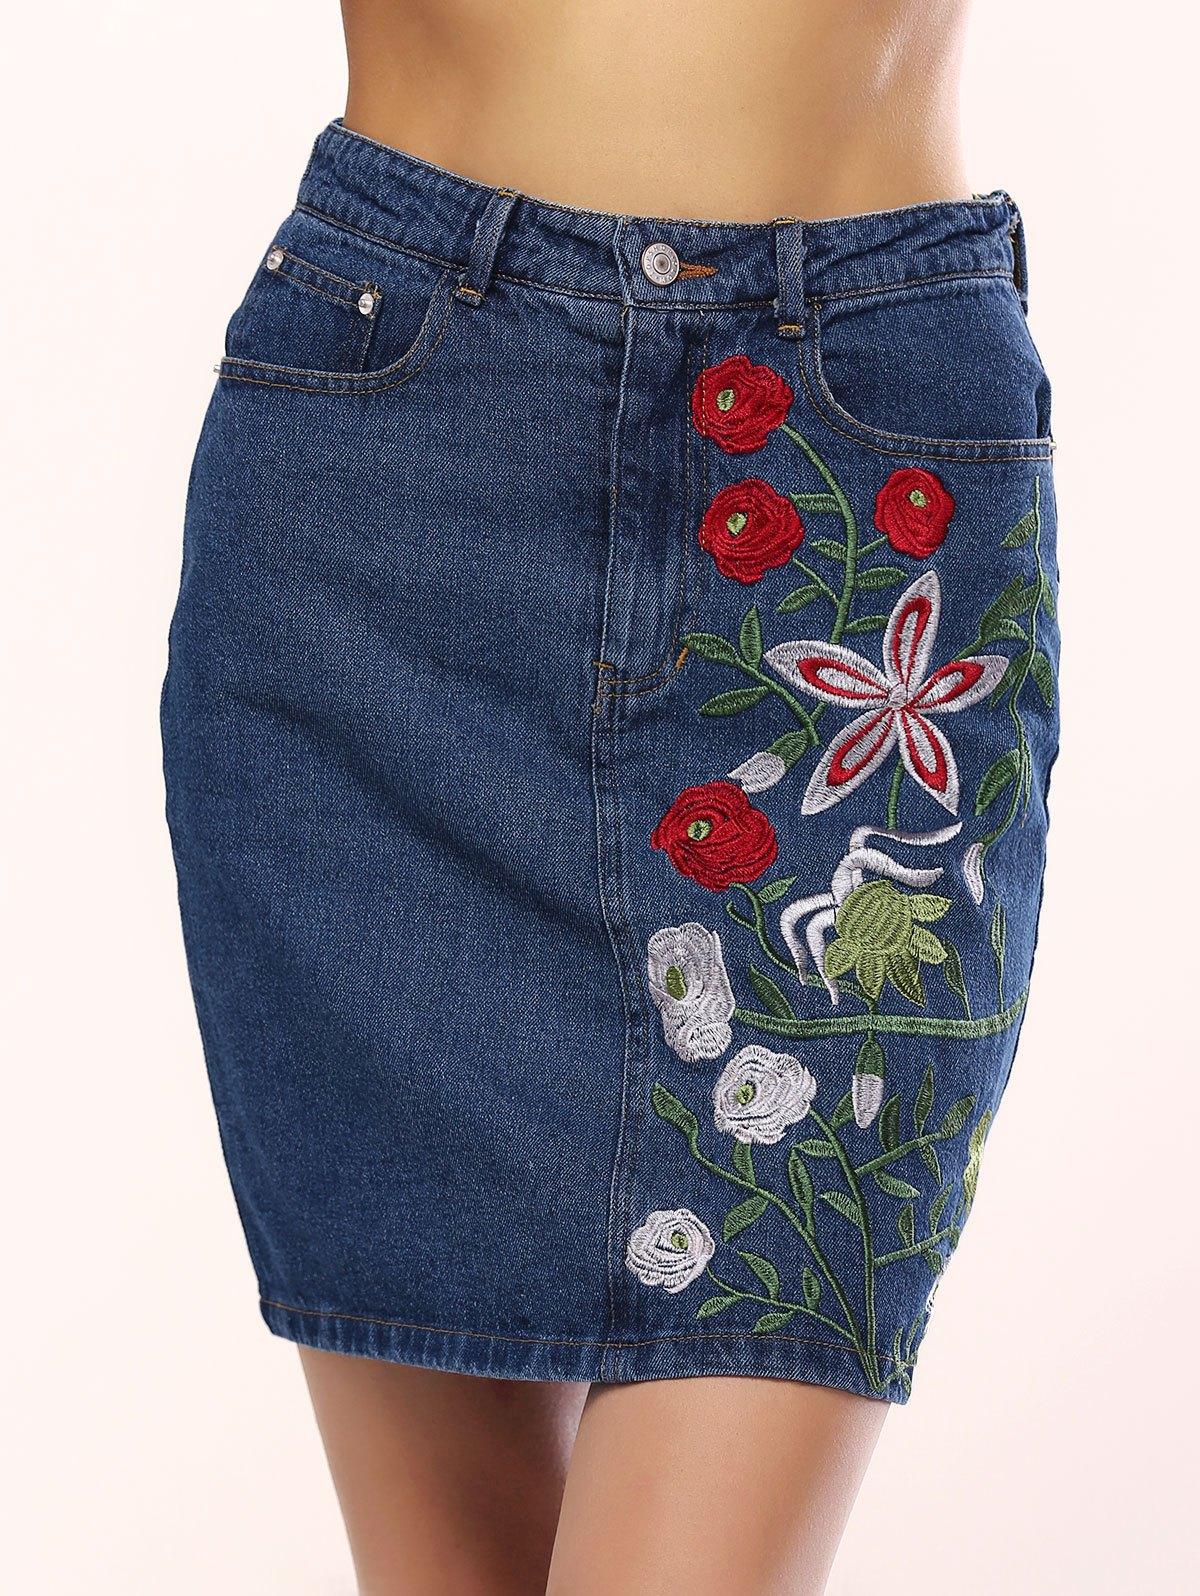 Refreshing Floral Embroidery Denim Skirt For Women - BLUE L